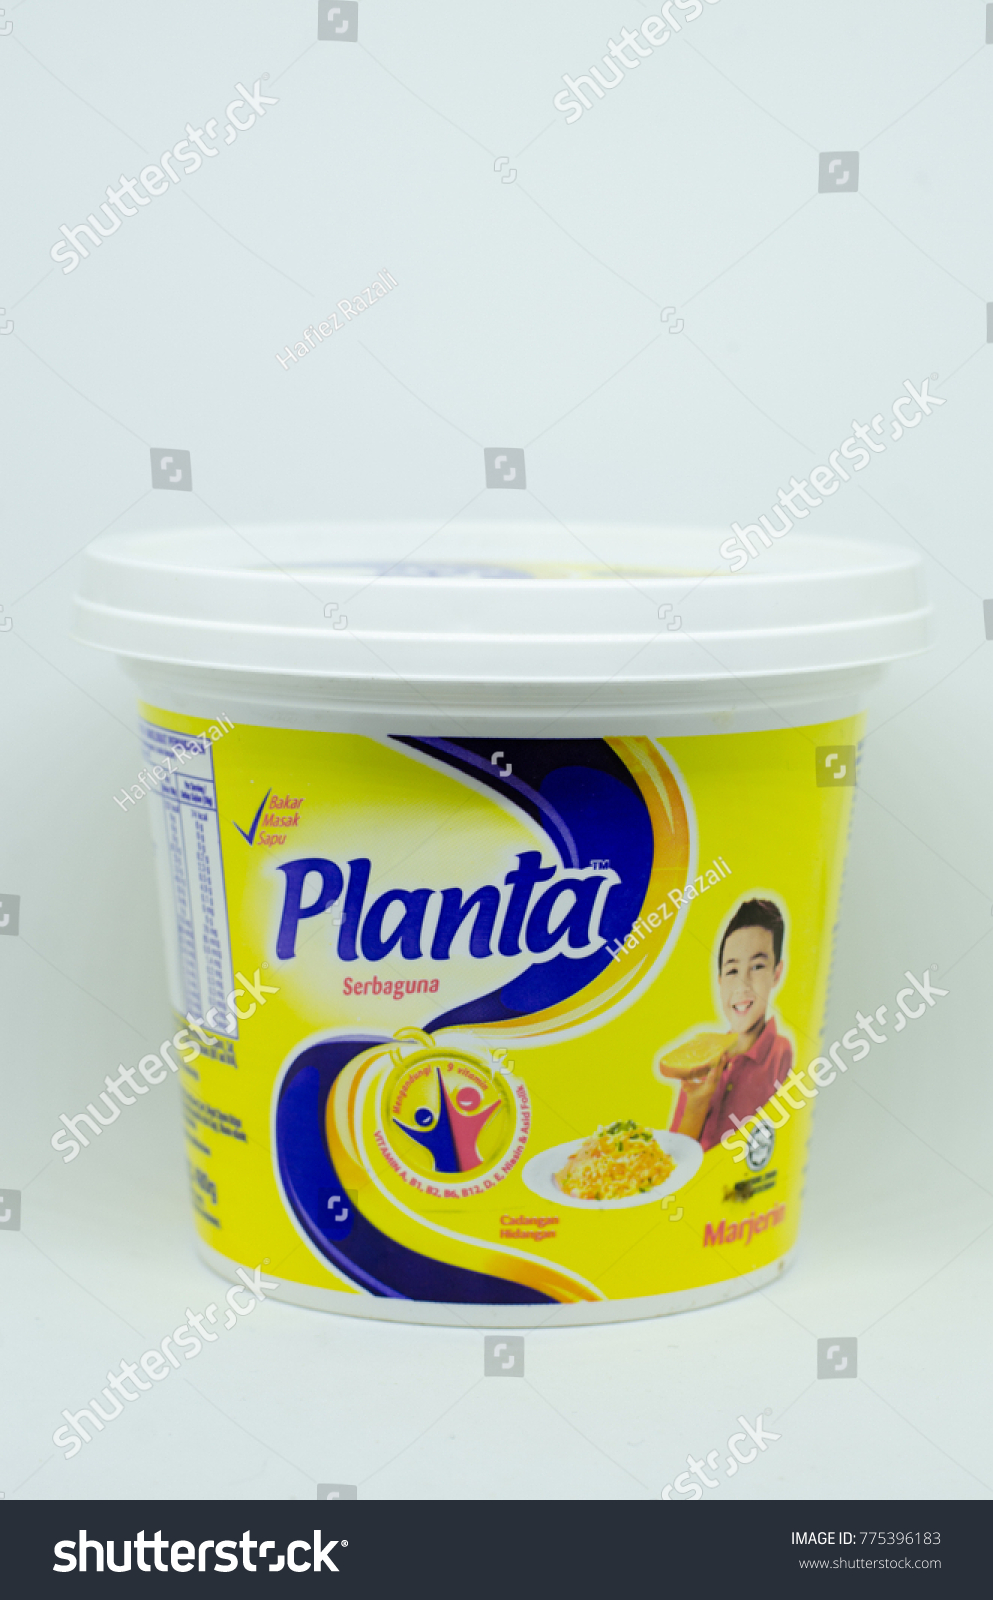 Selangormalaysia december 15th 2017 planta margarine stock photo selangormalaysia december 15th 2017 planta margarine brand by unilever isolated on white biocorpaavc Images